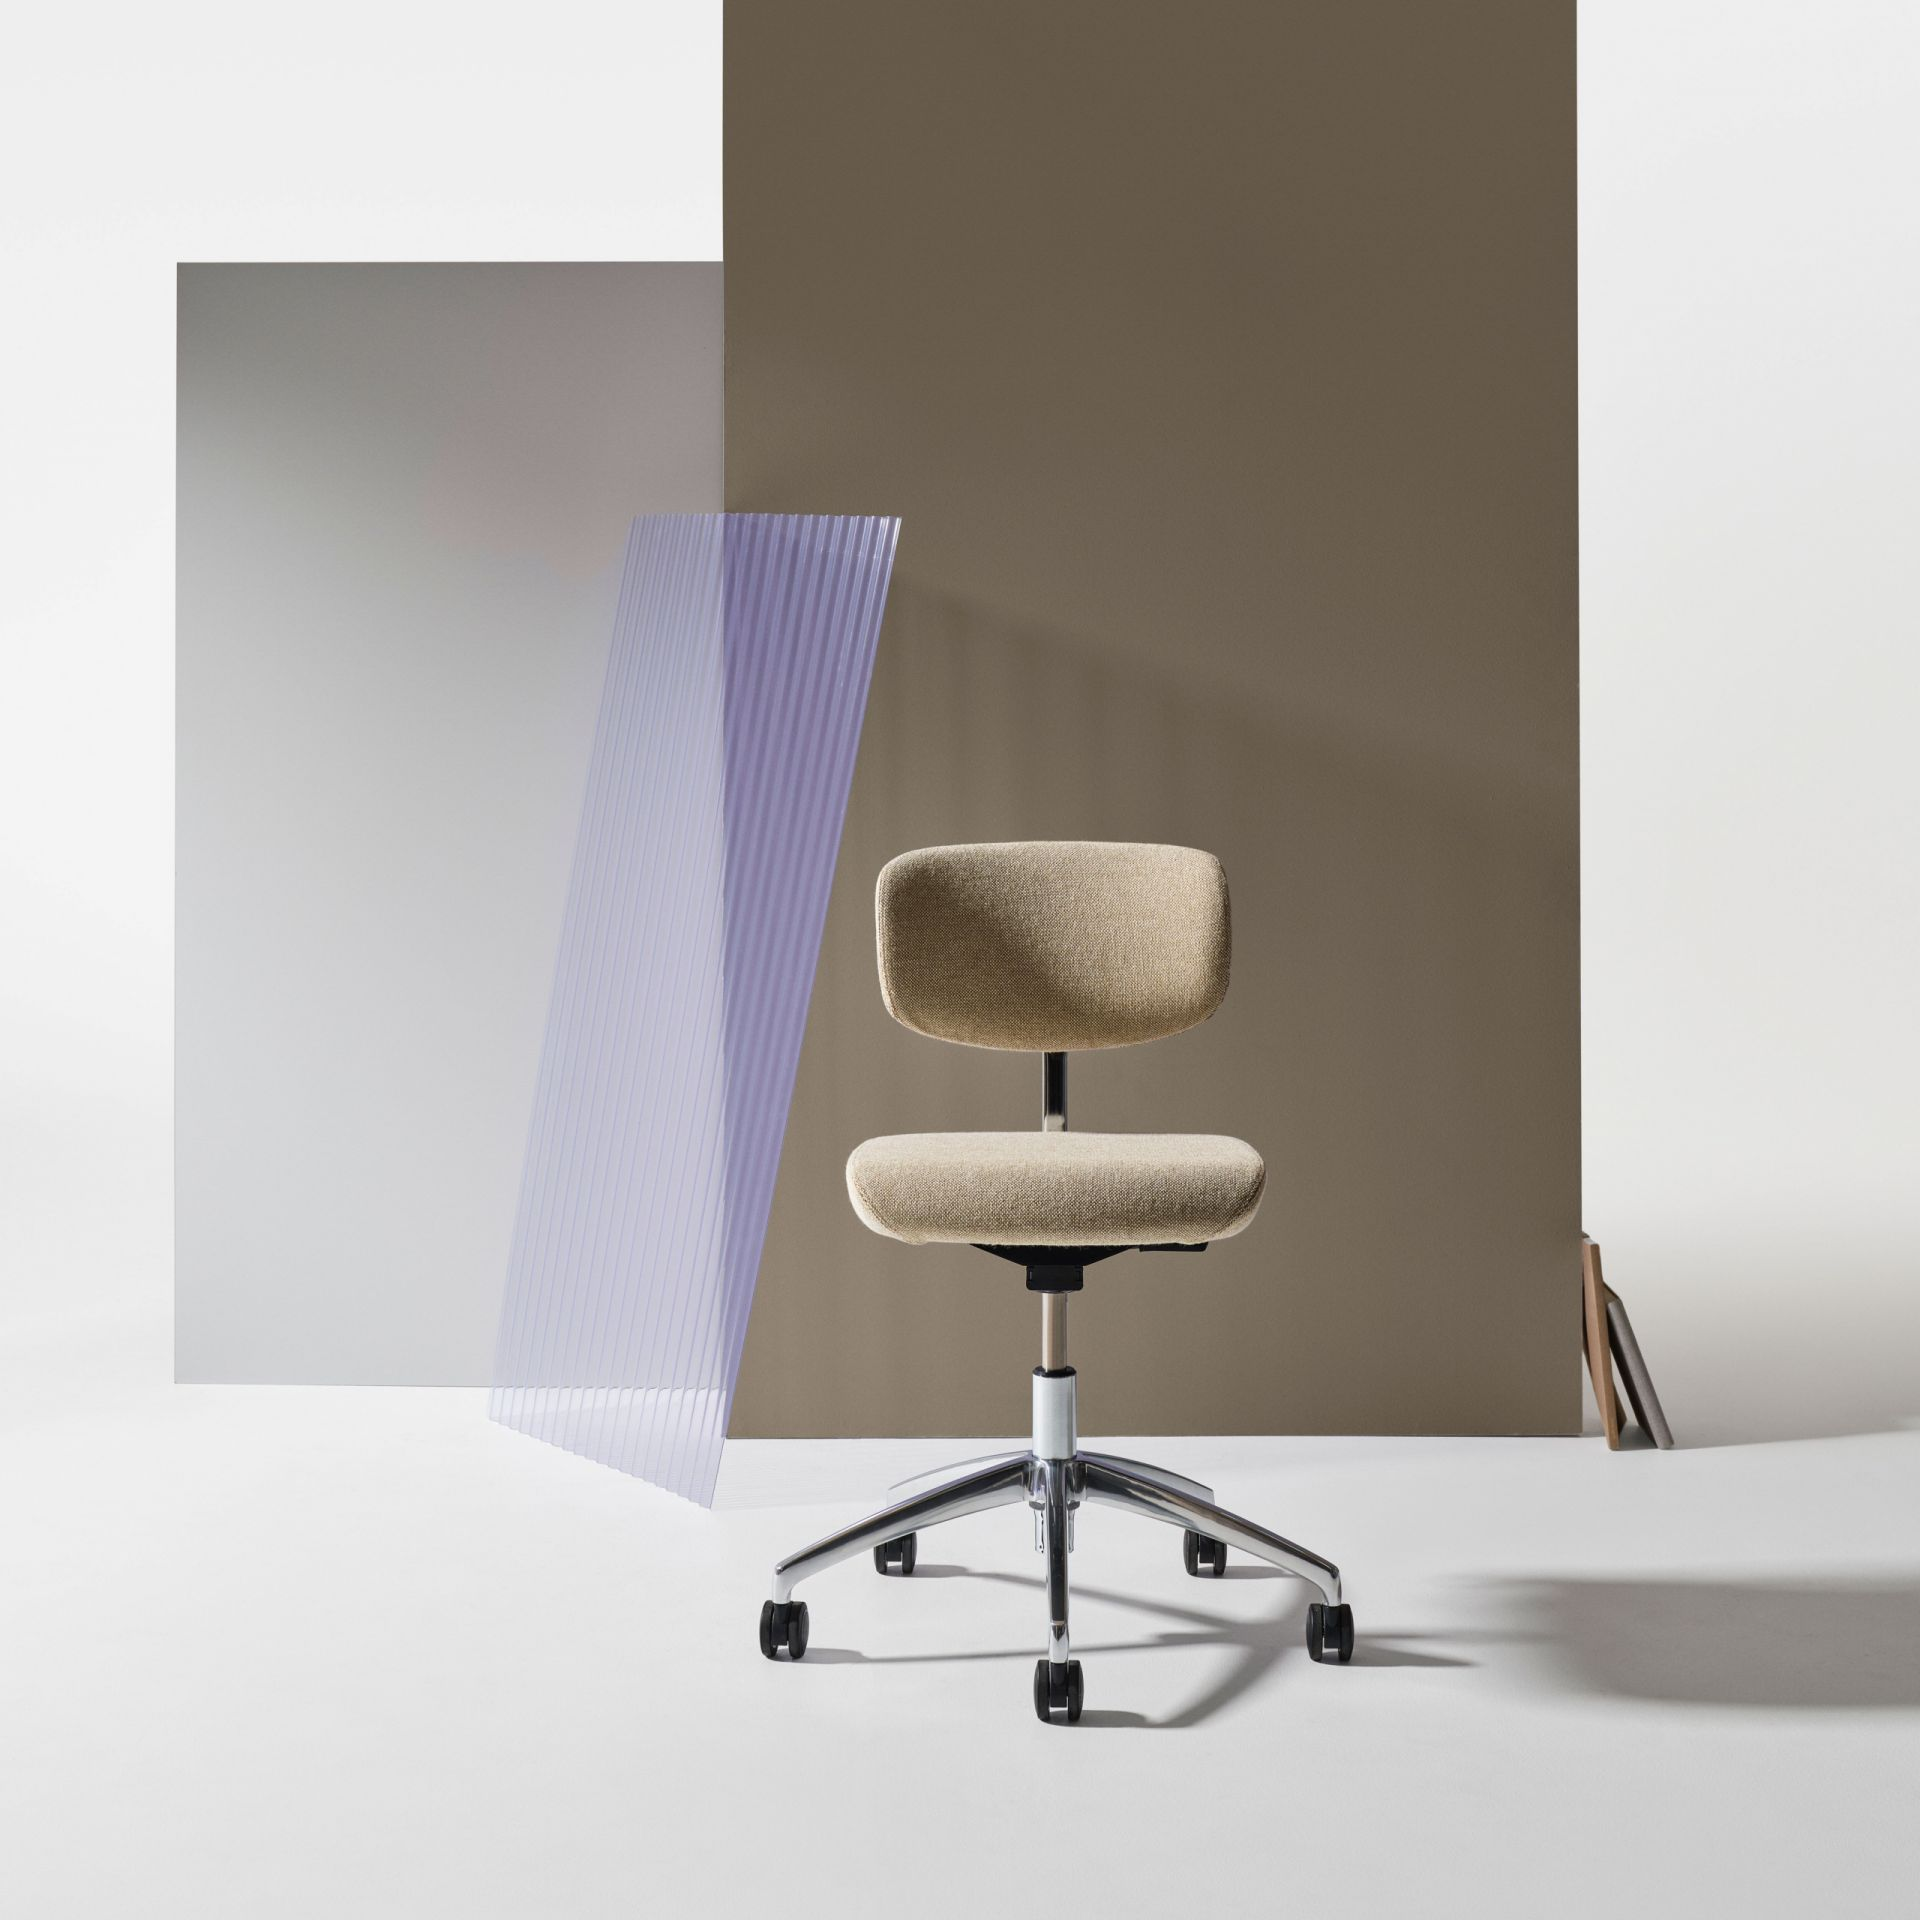 Savo Studio Studio workchair product image 1